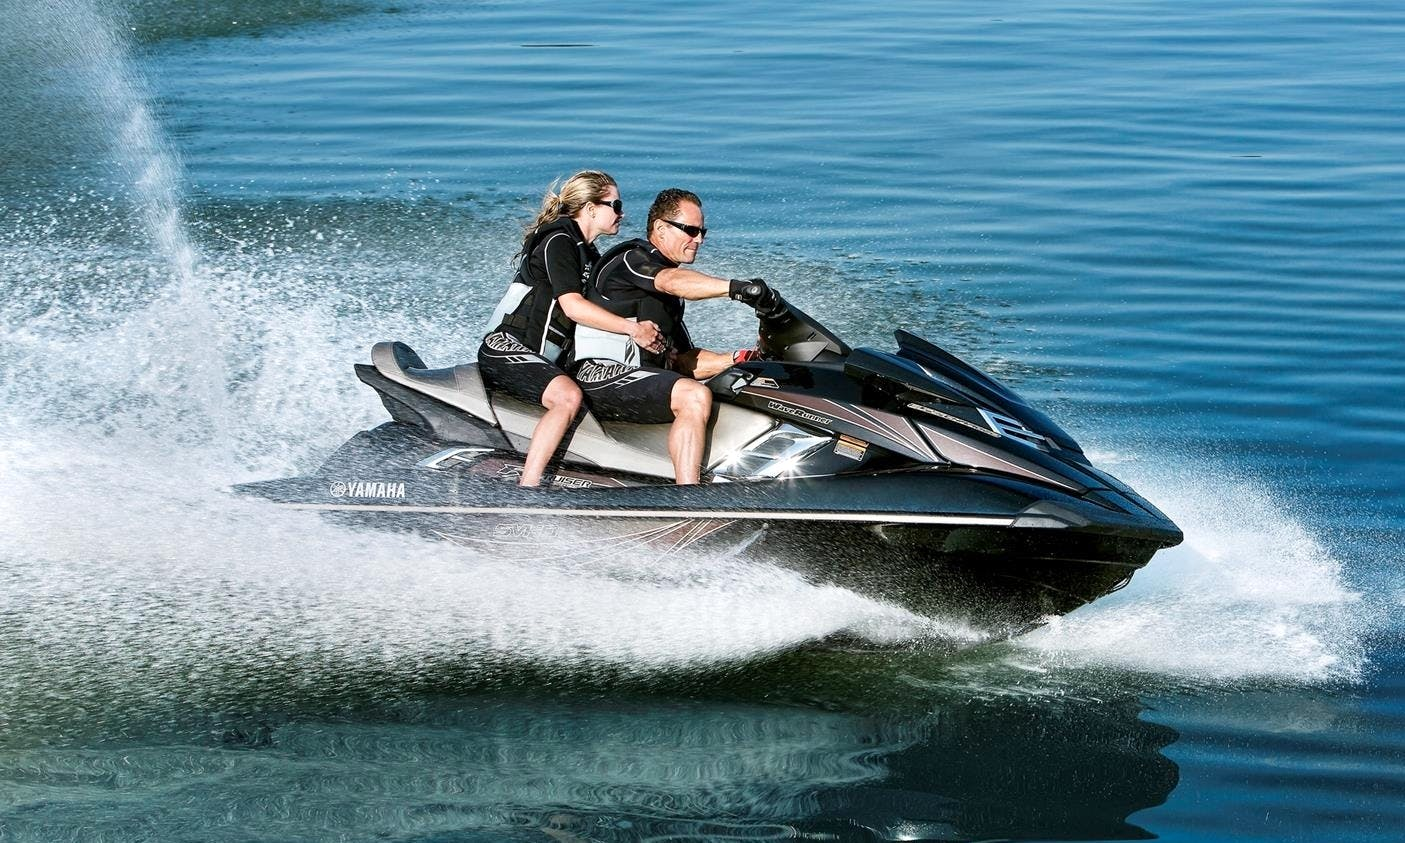 Jet Ski Lessons in Kerry, Ireland